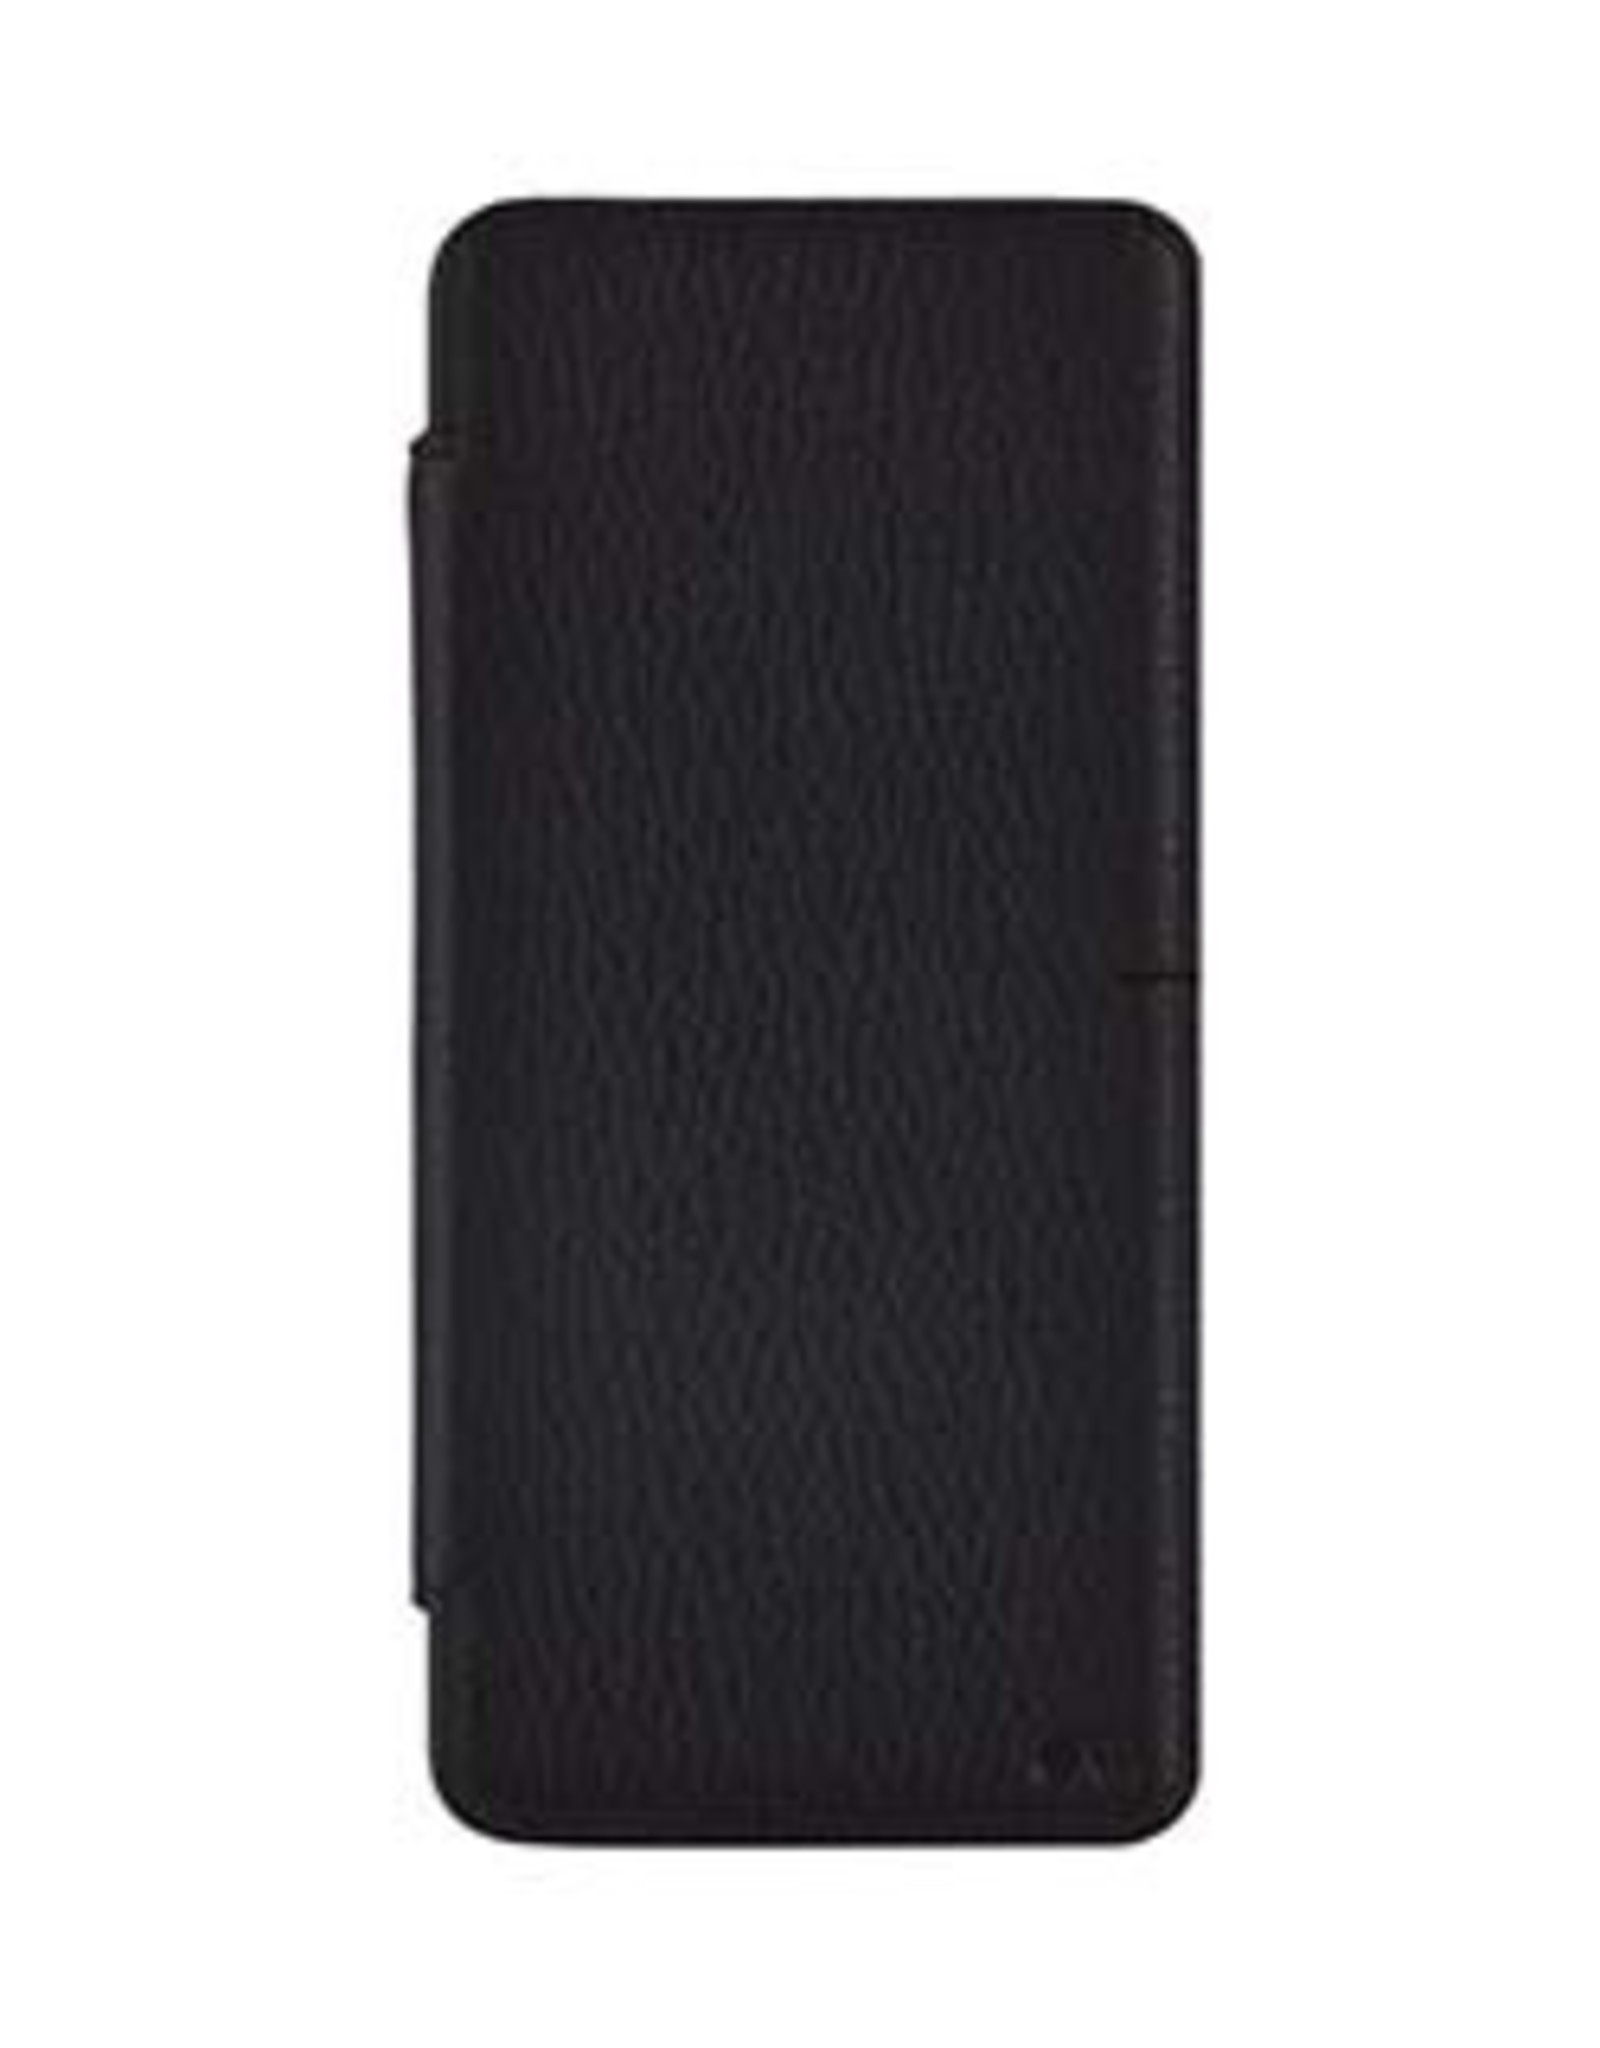 Case-Mate Case-Mate | Samsung Galaxy S20 Black Pebbled Leather Wallet Folio Case 15-06663